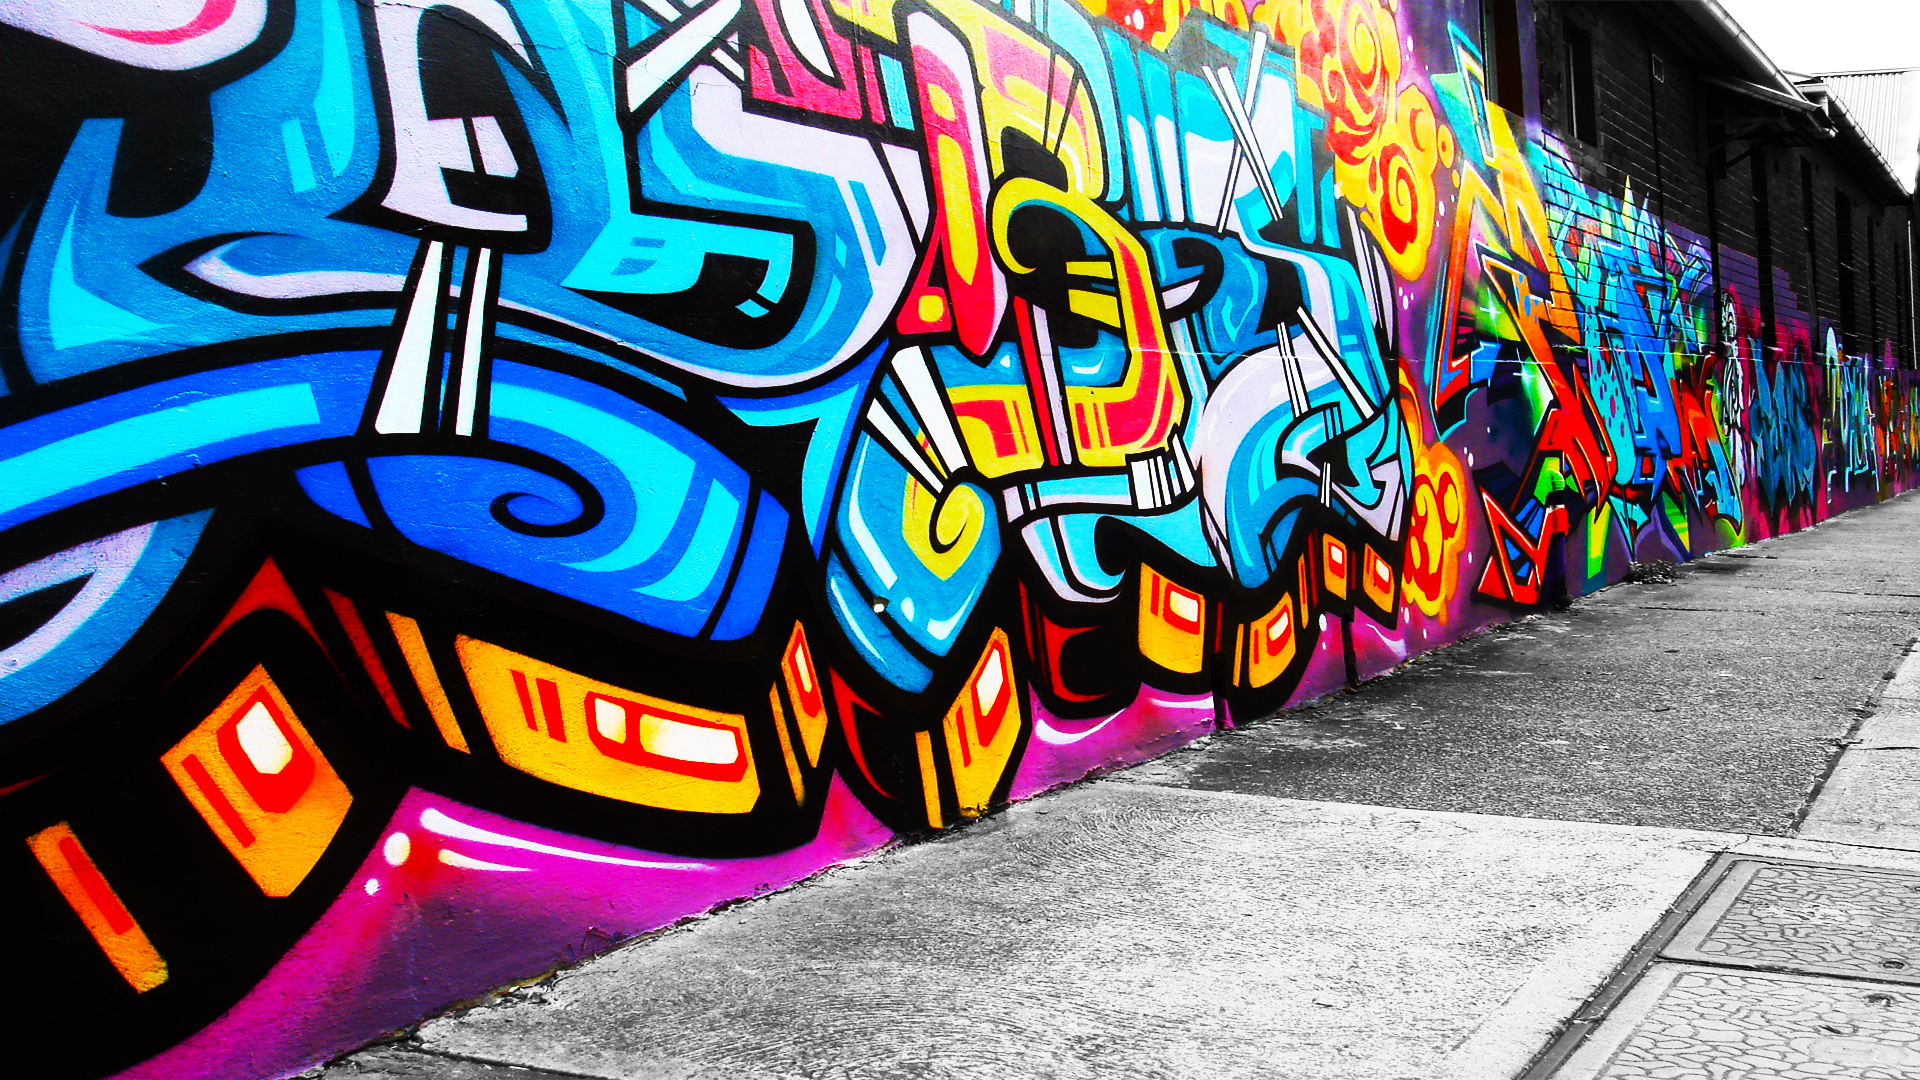 Graffiti on City Streets 727.3 Kb